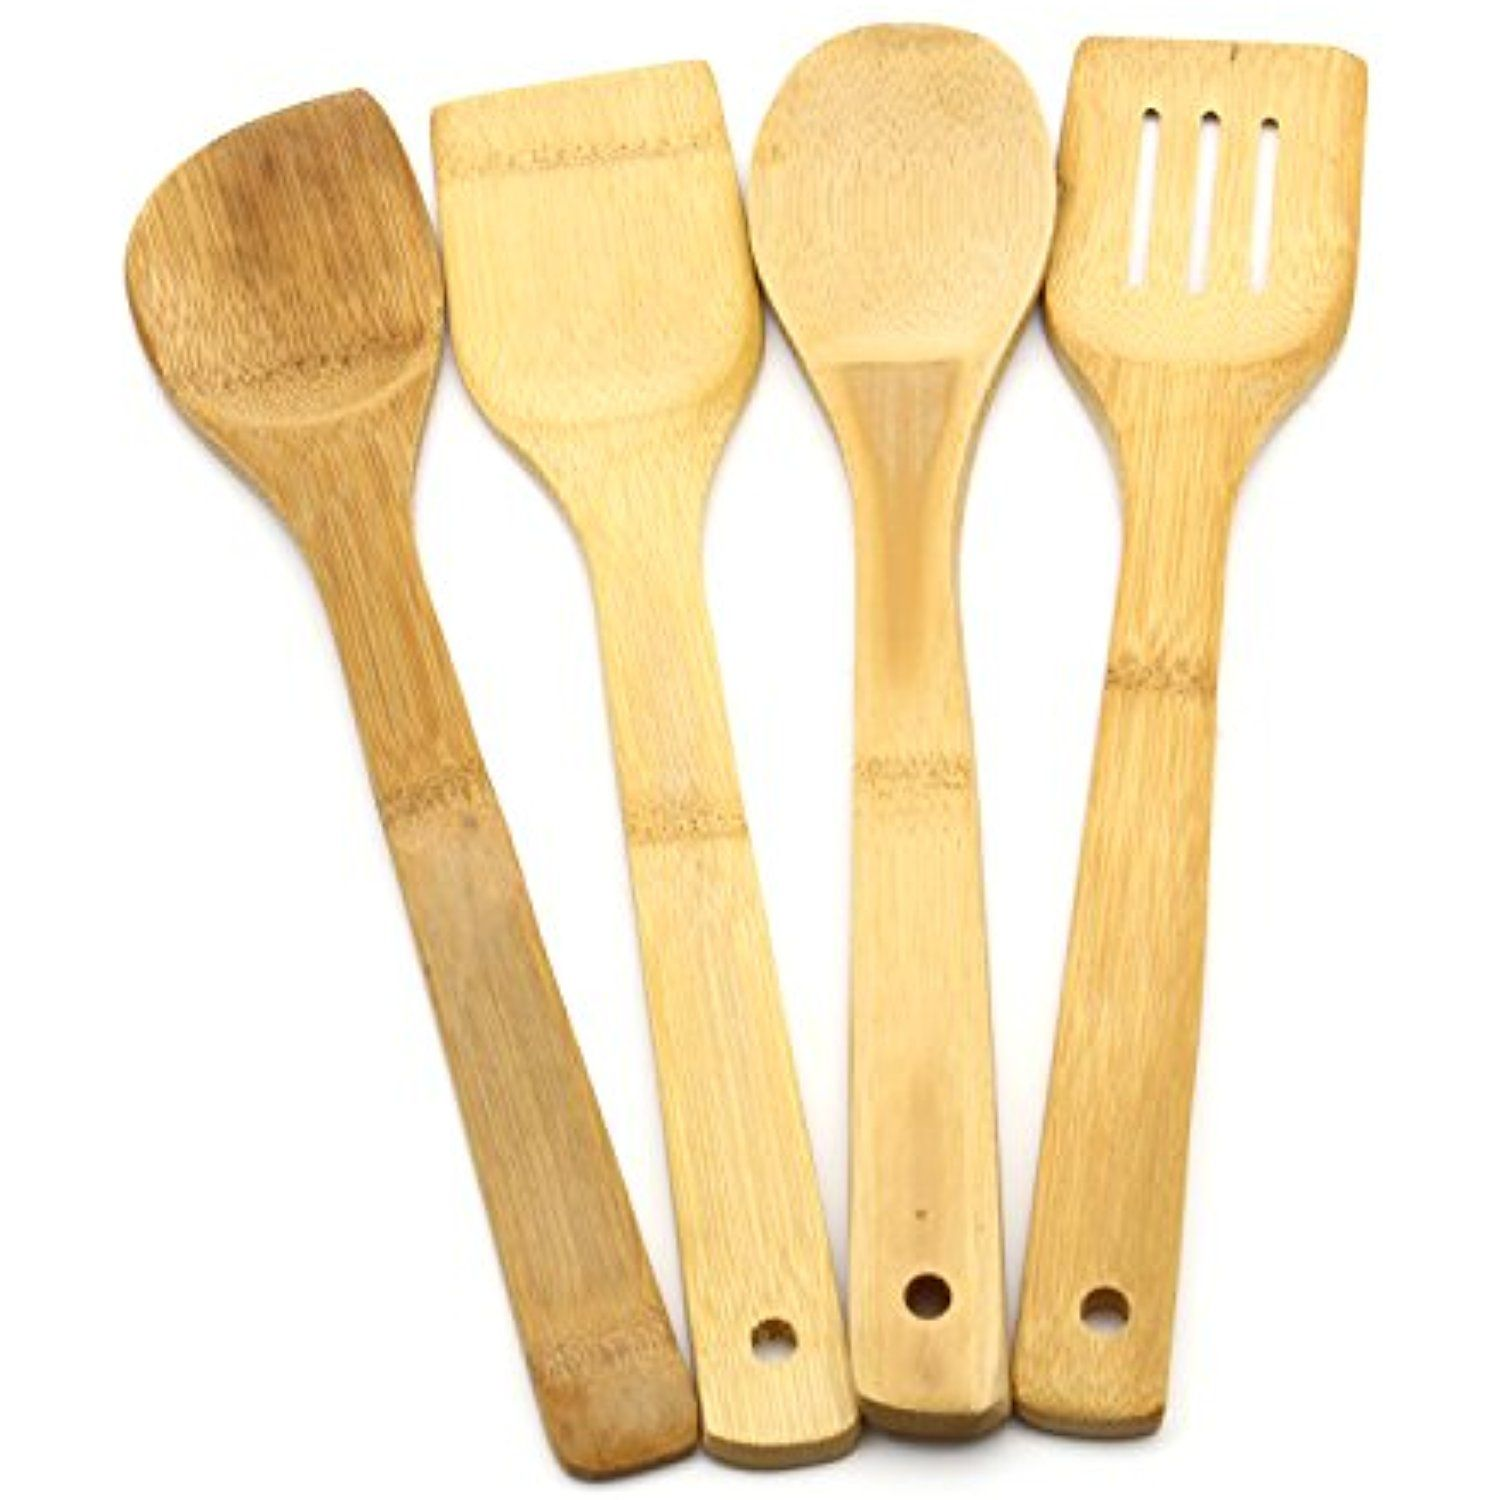 4Pcs Bamboo Cooking Utensils Set Wood Kitchen Tools ** Want ...